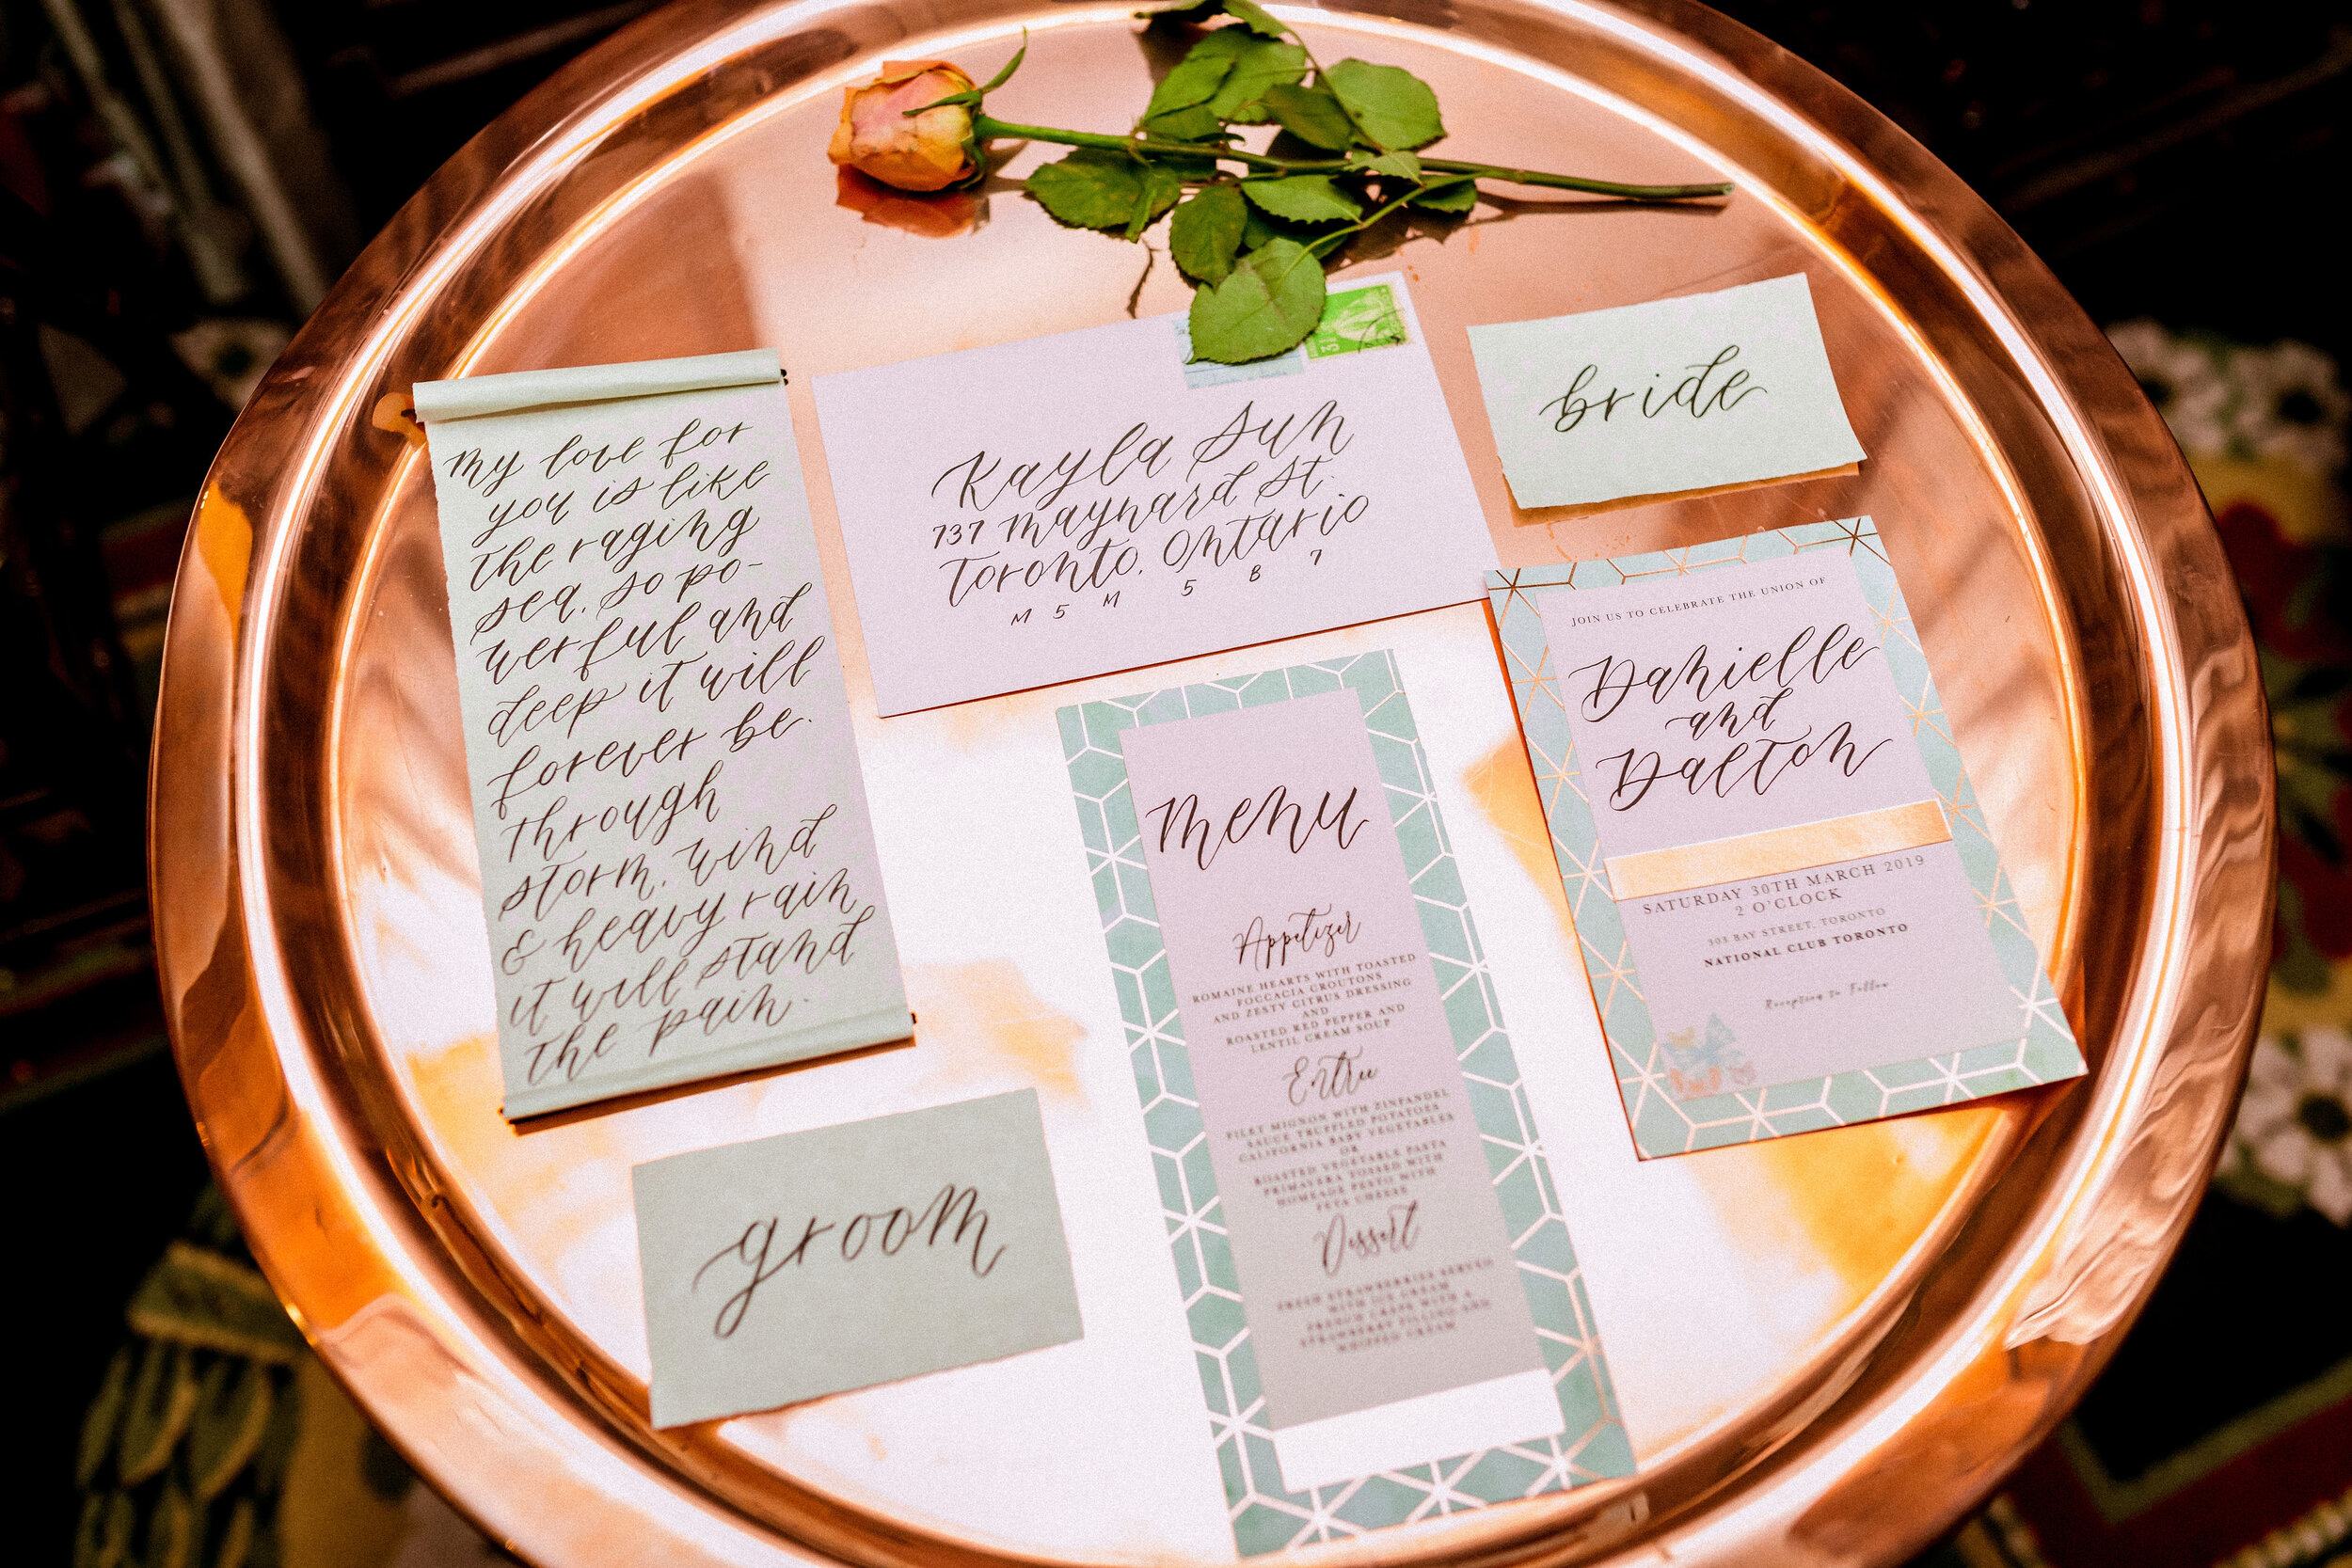 Karimah_Gheddai_Photography_Black_couple_wedding_calligraphy